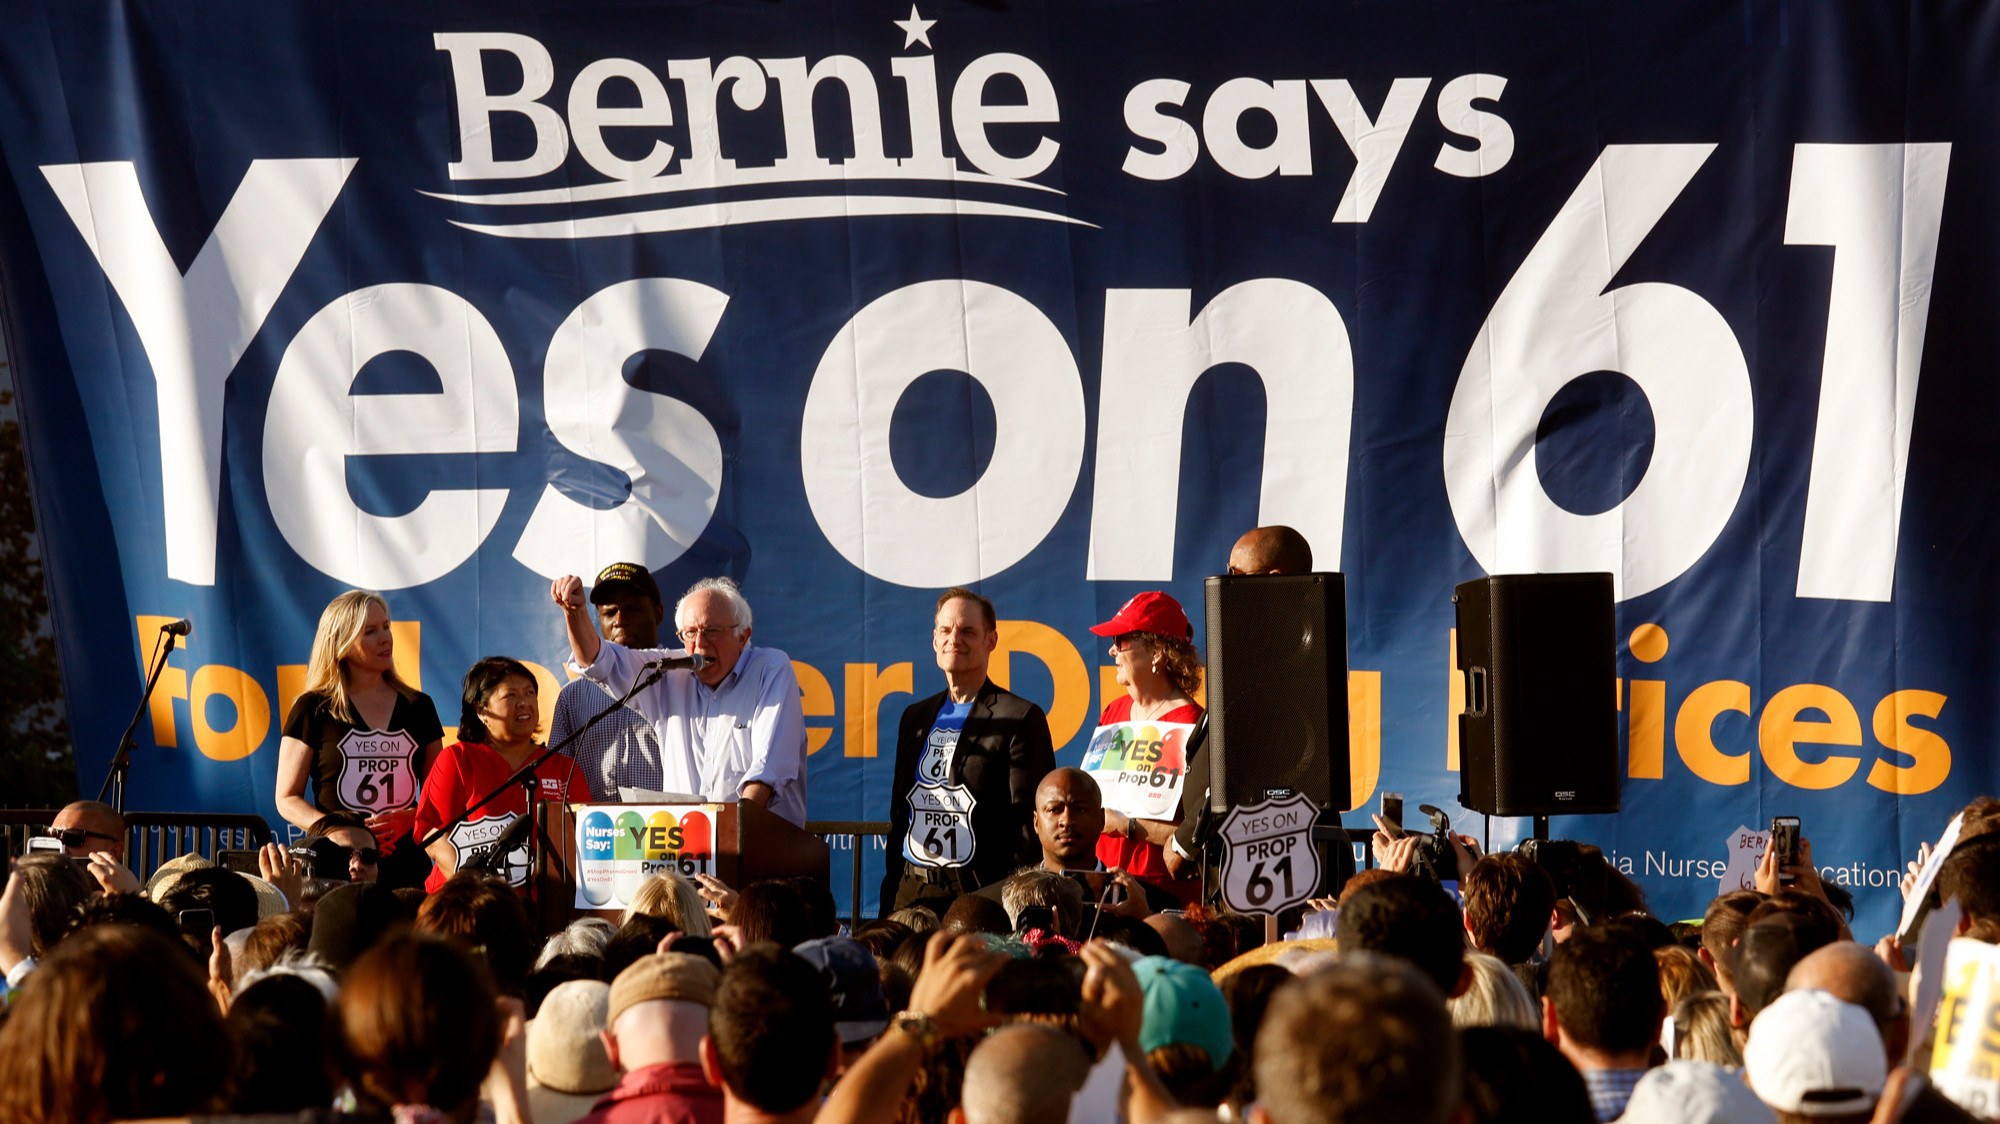 U.S. Sen. Bernie Sanders speaks to the crowd at a rally in Hollywood in support of Proposition 61. (Genaro Molina / Los Angeles Times)